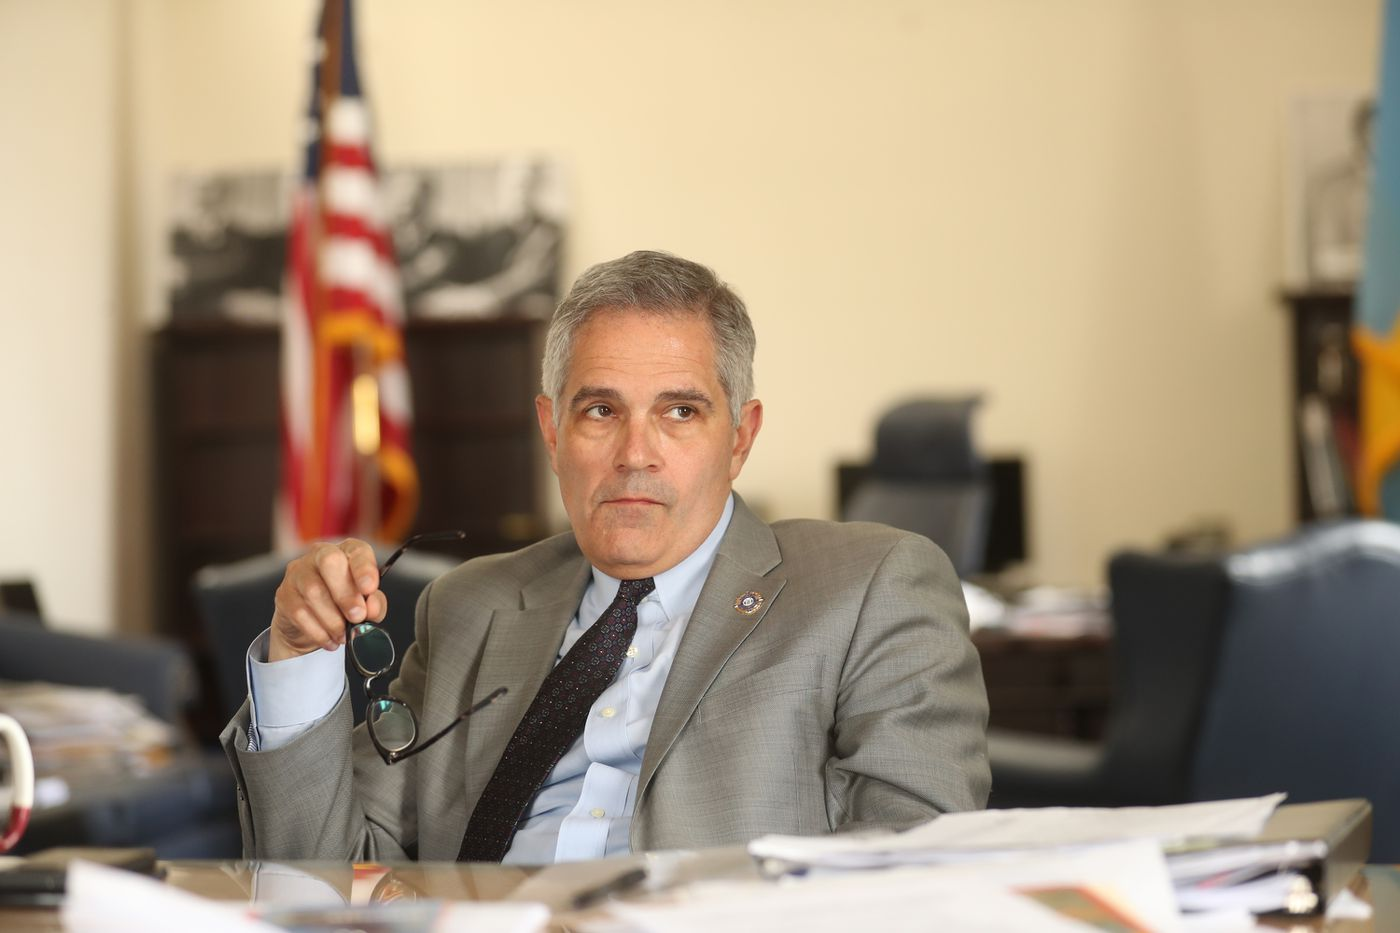 Philly DA Larry Krasner seeking to develop comprehensive list of tainted cops